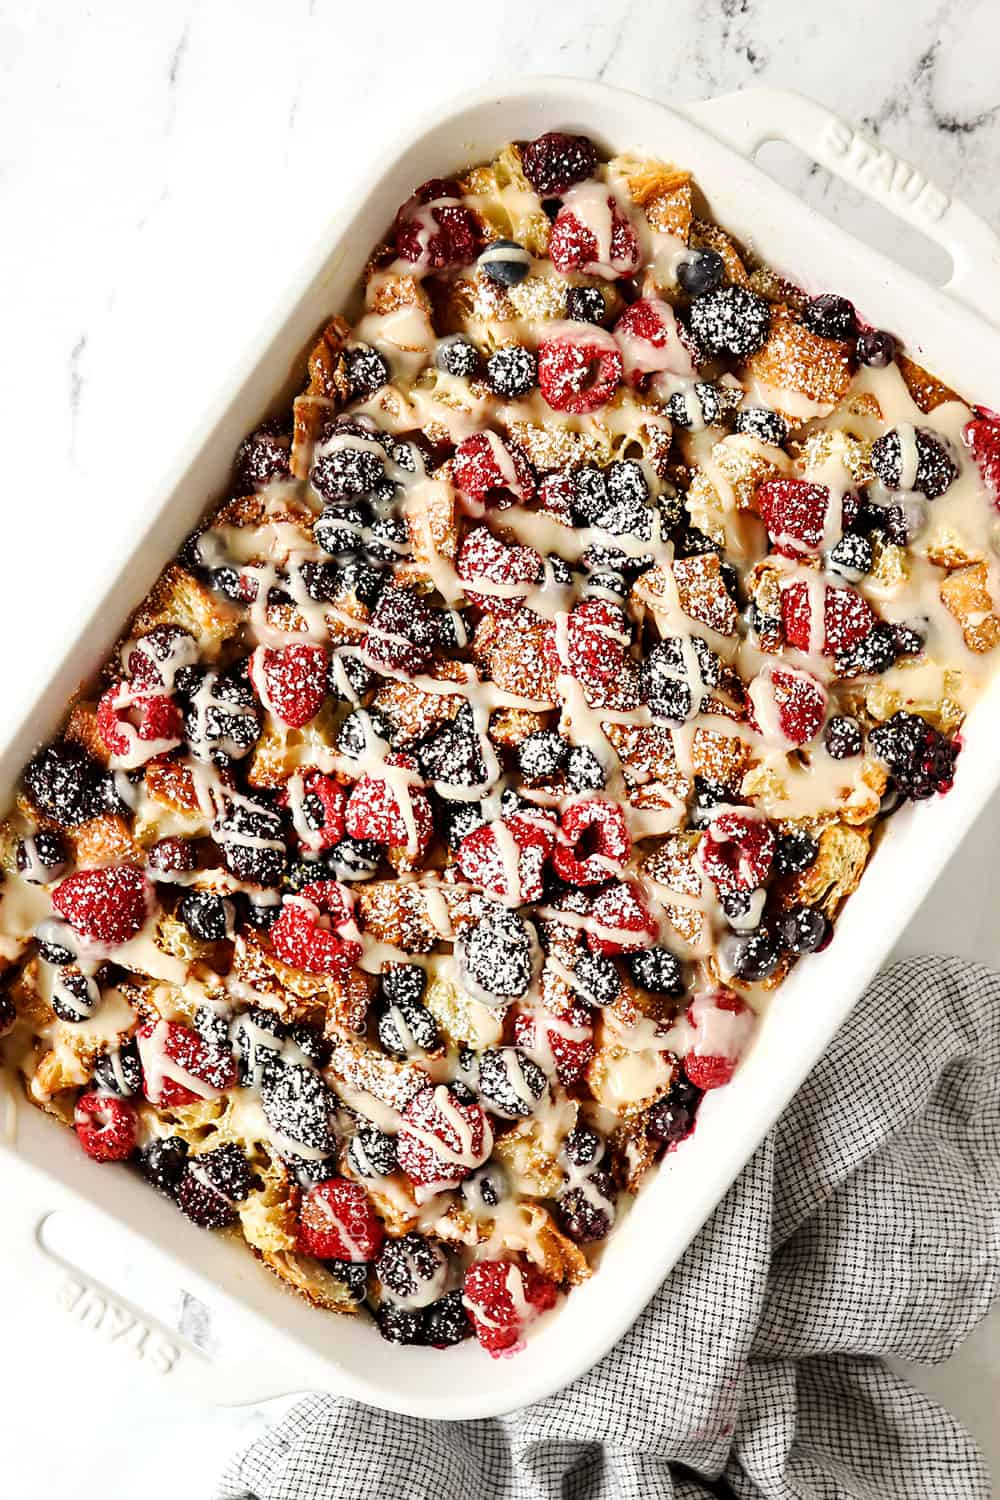 top view of croissant breakfast casserole with berries in a white casserole dish